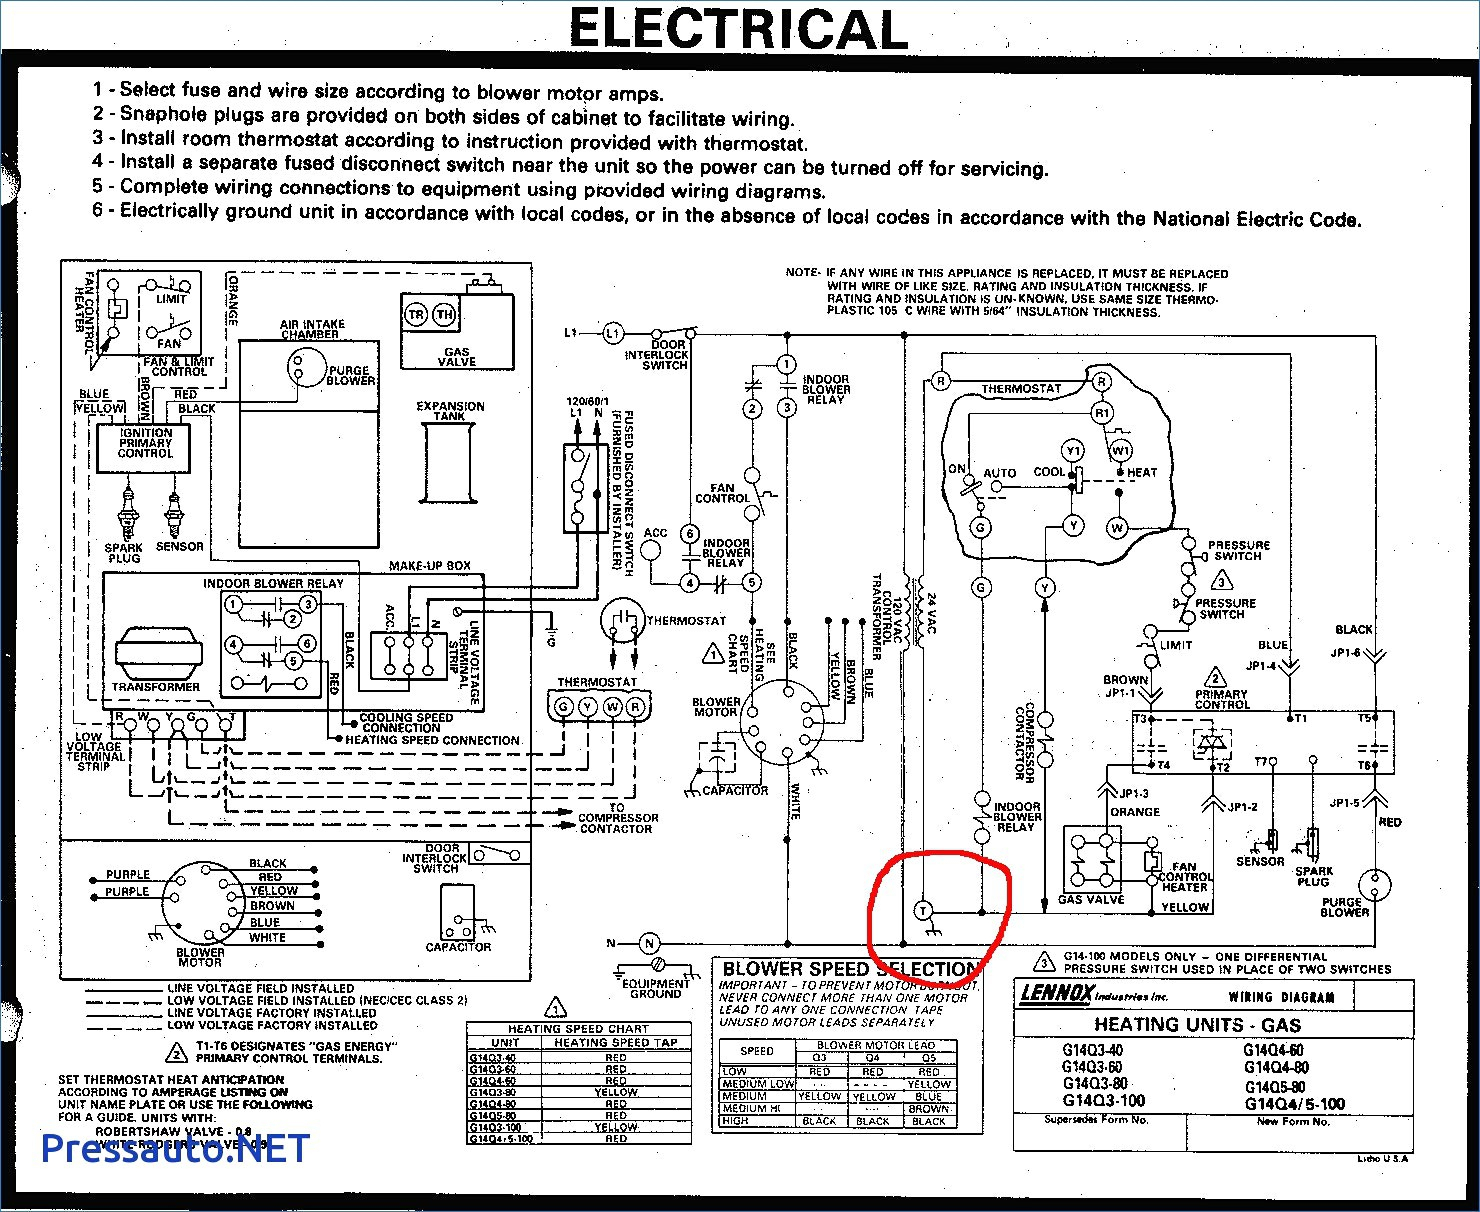 Honeywell Fan Limit Switch Wiring Diagram Gallery